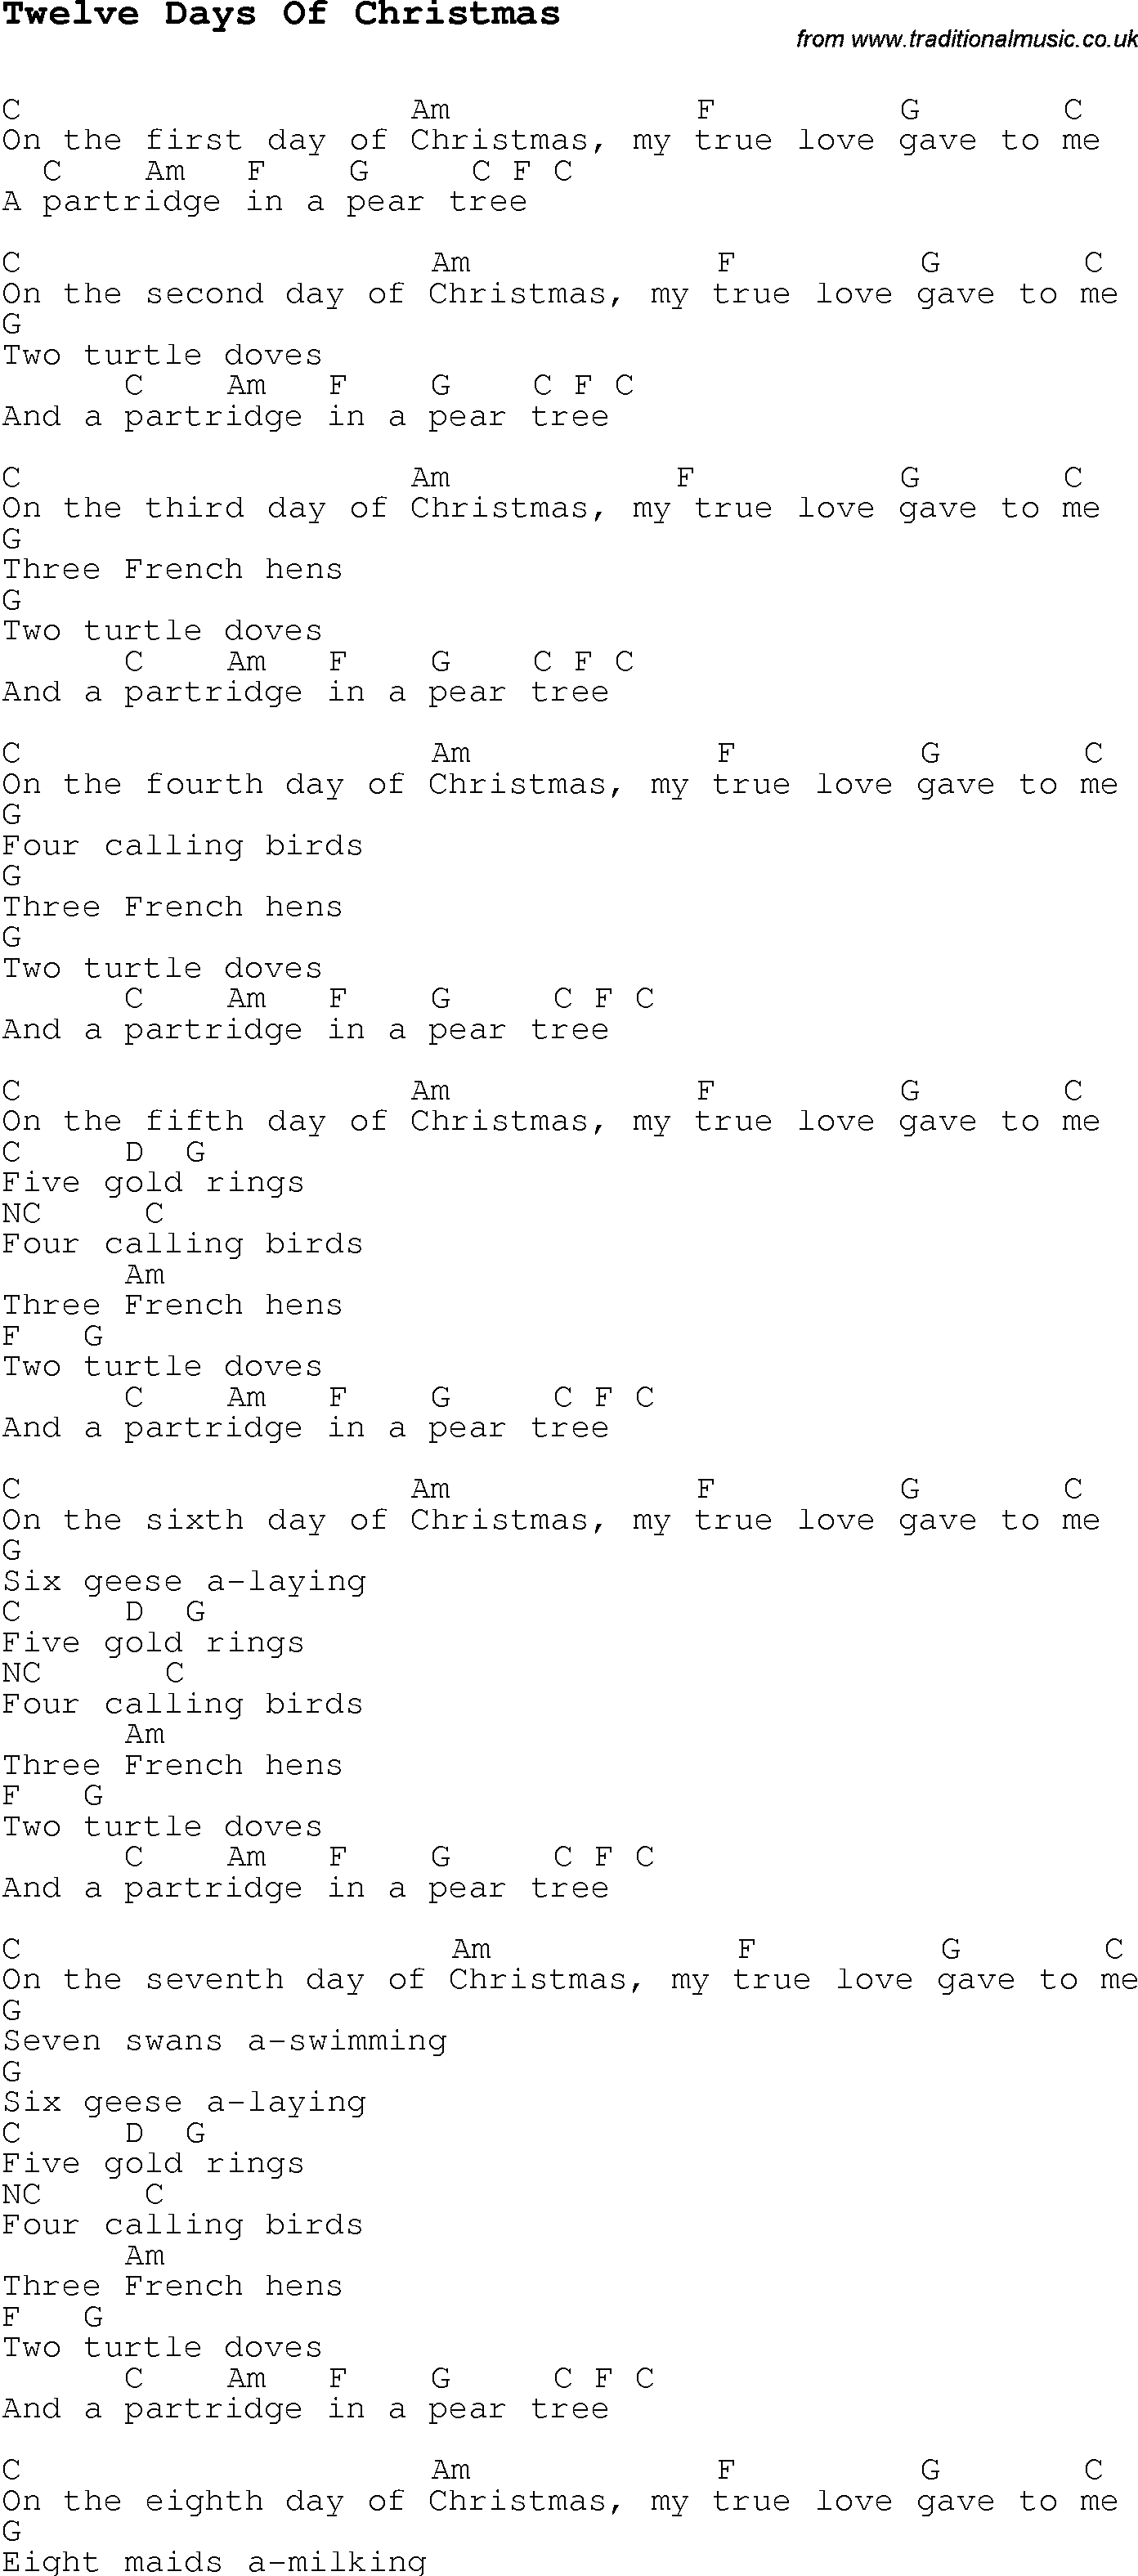 Christmas Carol/Song lyrics with chords for Twelve Days Of Christmas